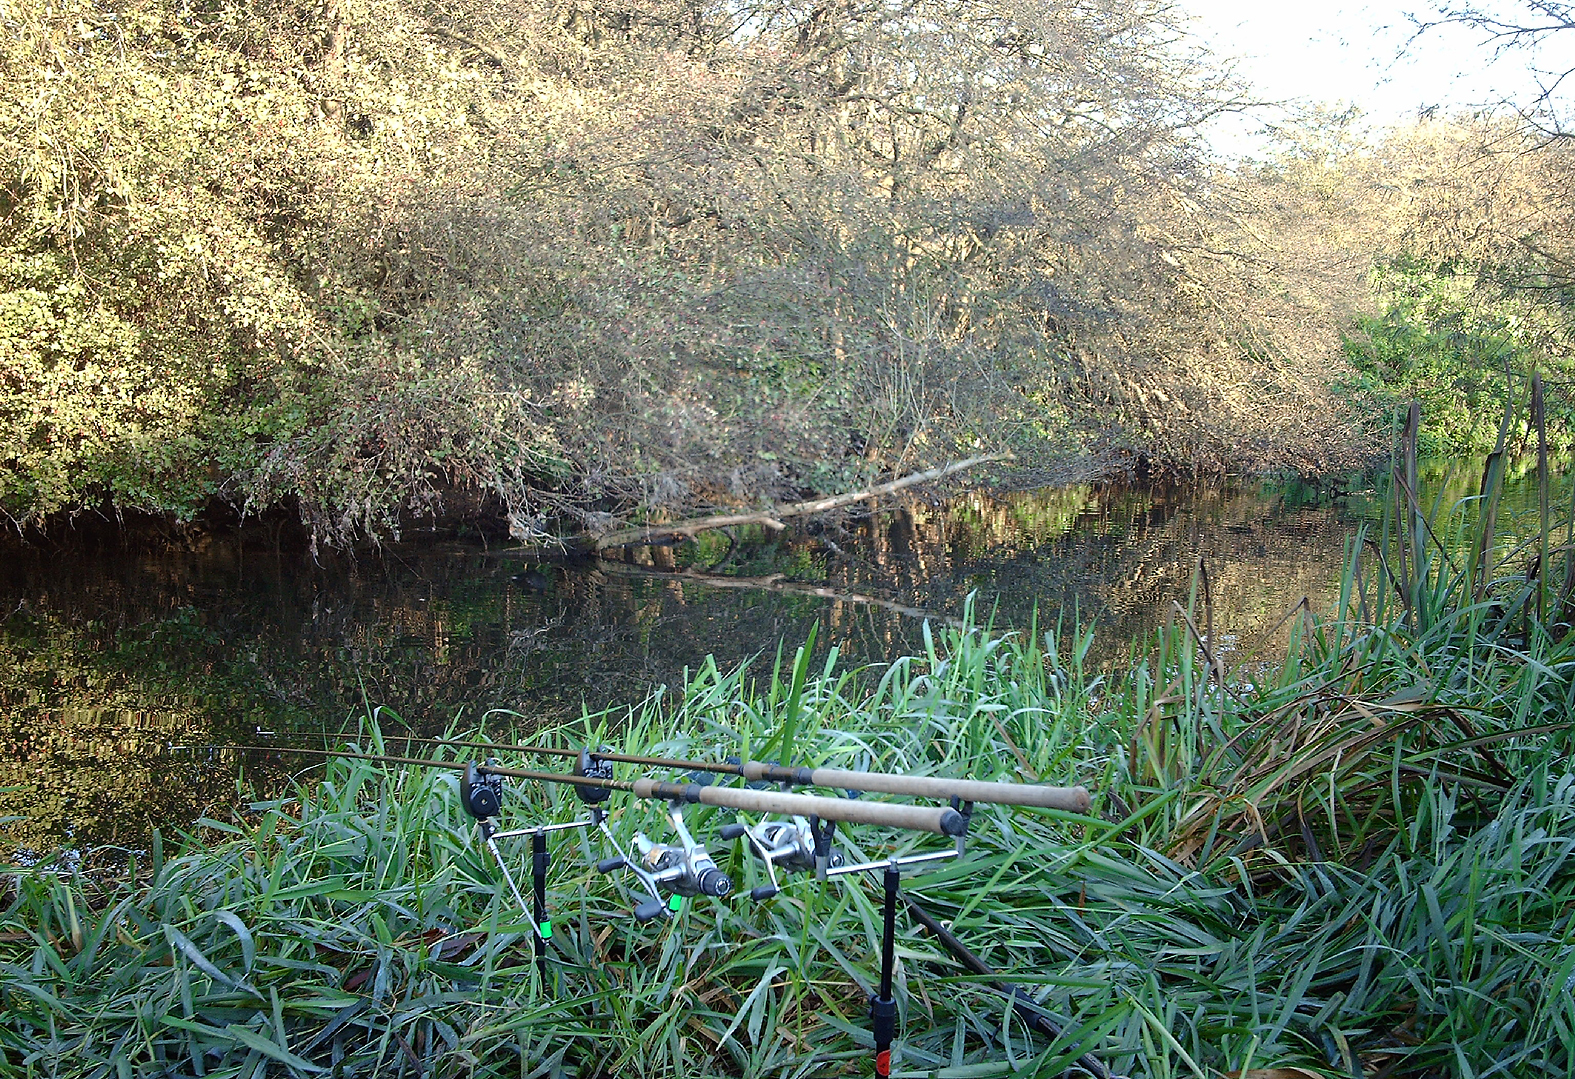 Barbel fishing at Fishers Green, on the river Lea